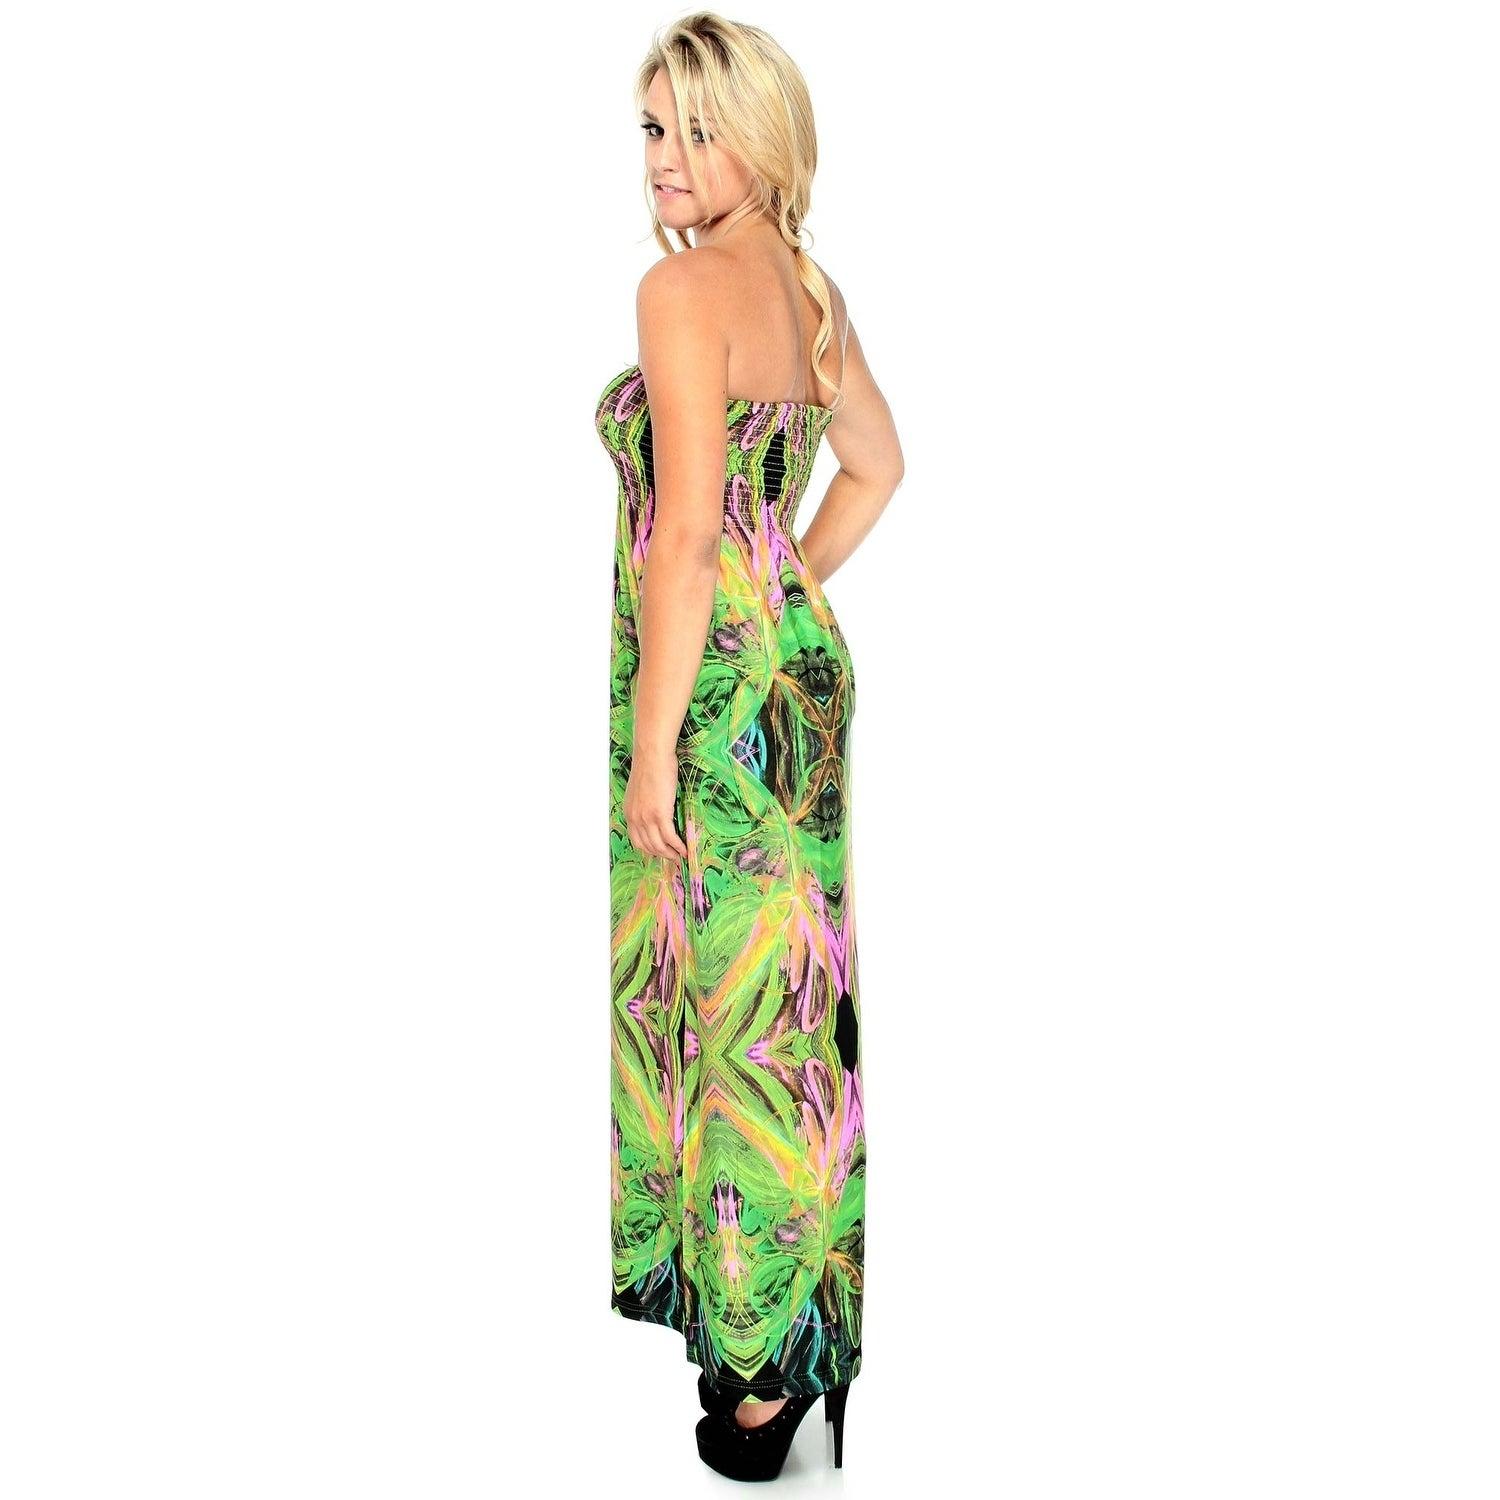 eca39f9f8ffe Shop Bohemian Strapless Dress in Stretch/Neon Print,Blue/Multi,M - Free  Shipping Today - Overstock - 20646995